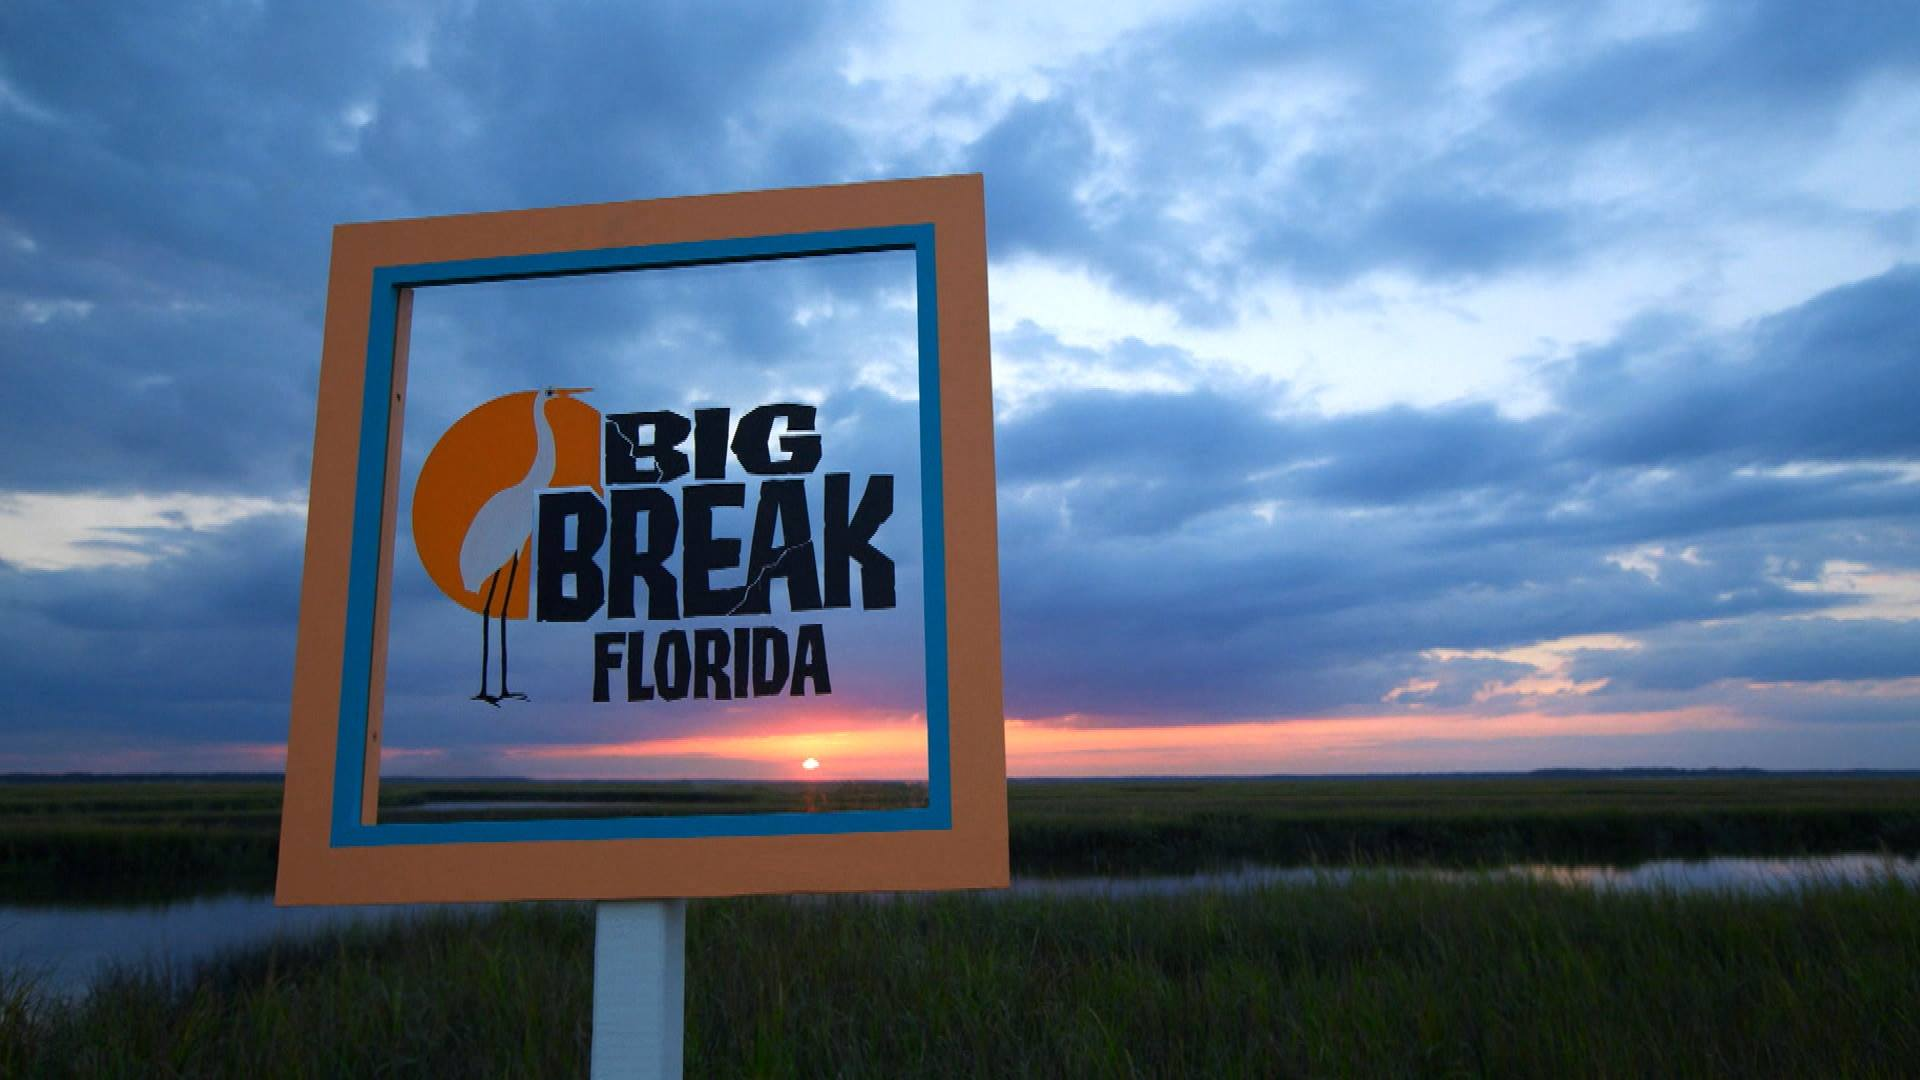 Big Break Florida